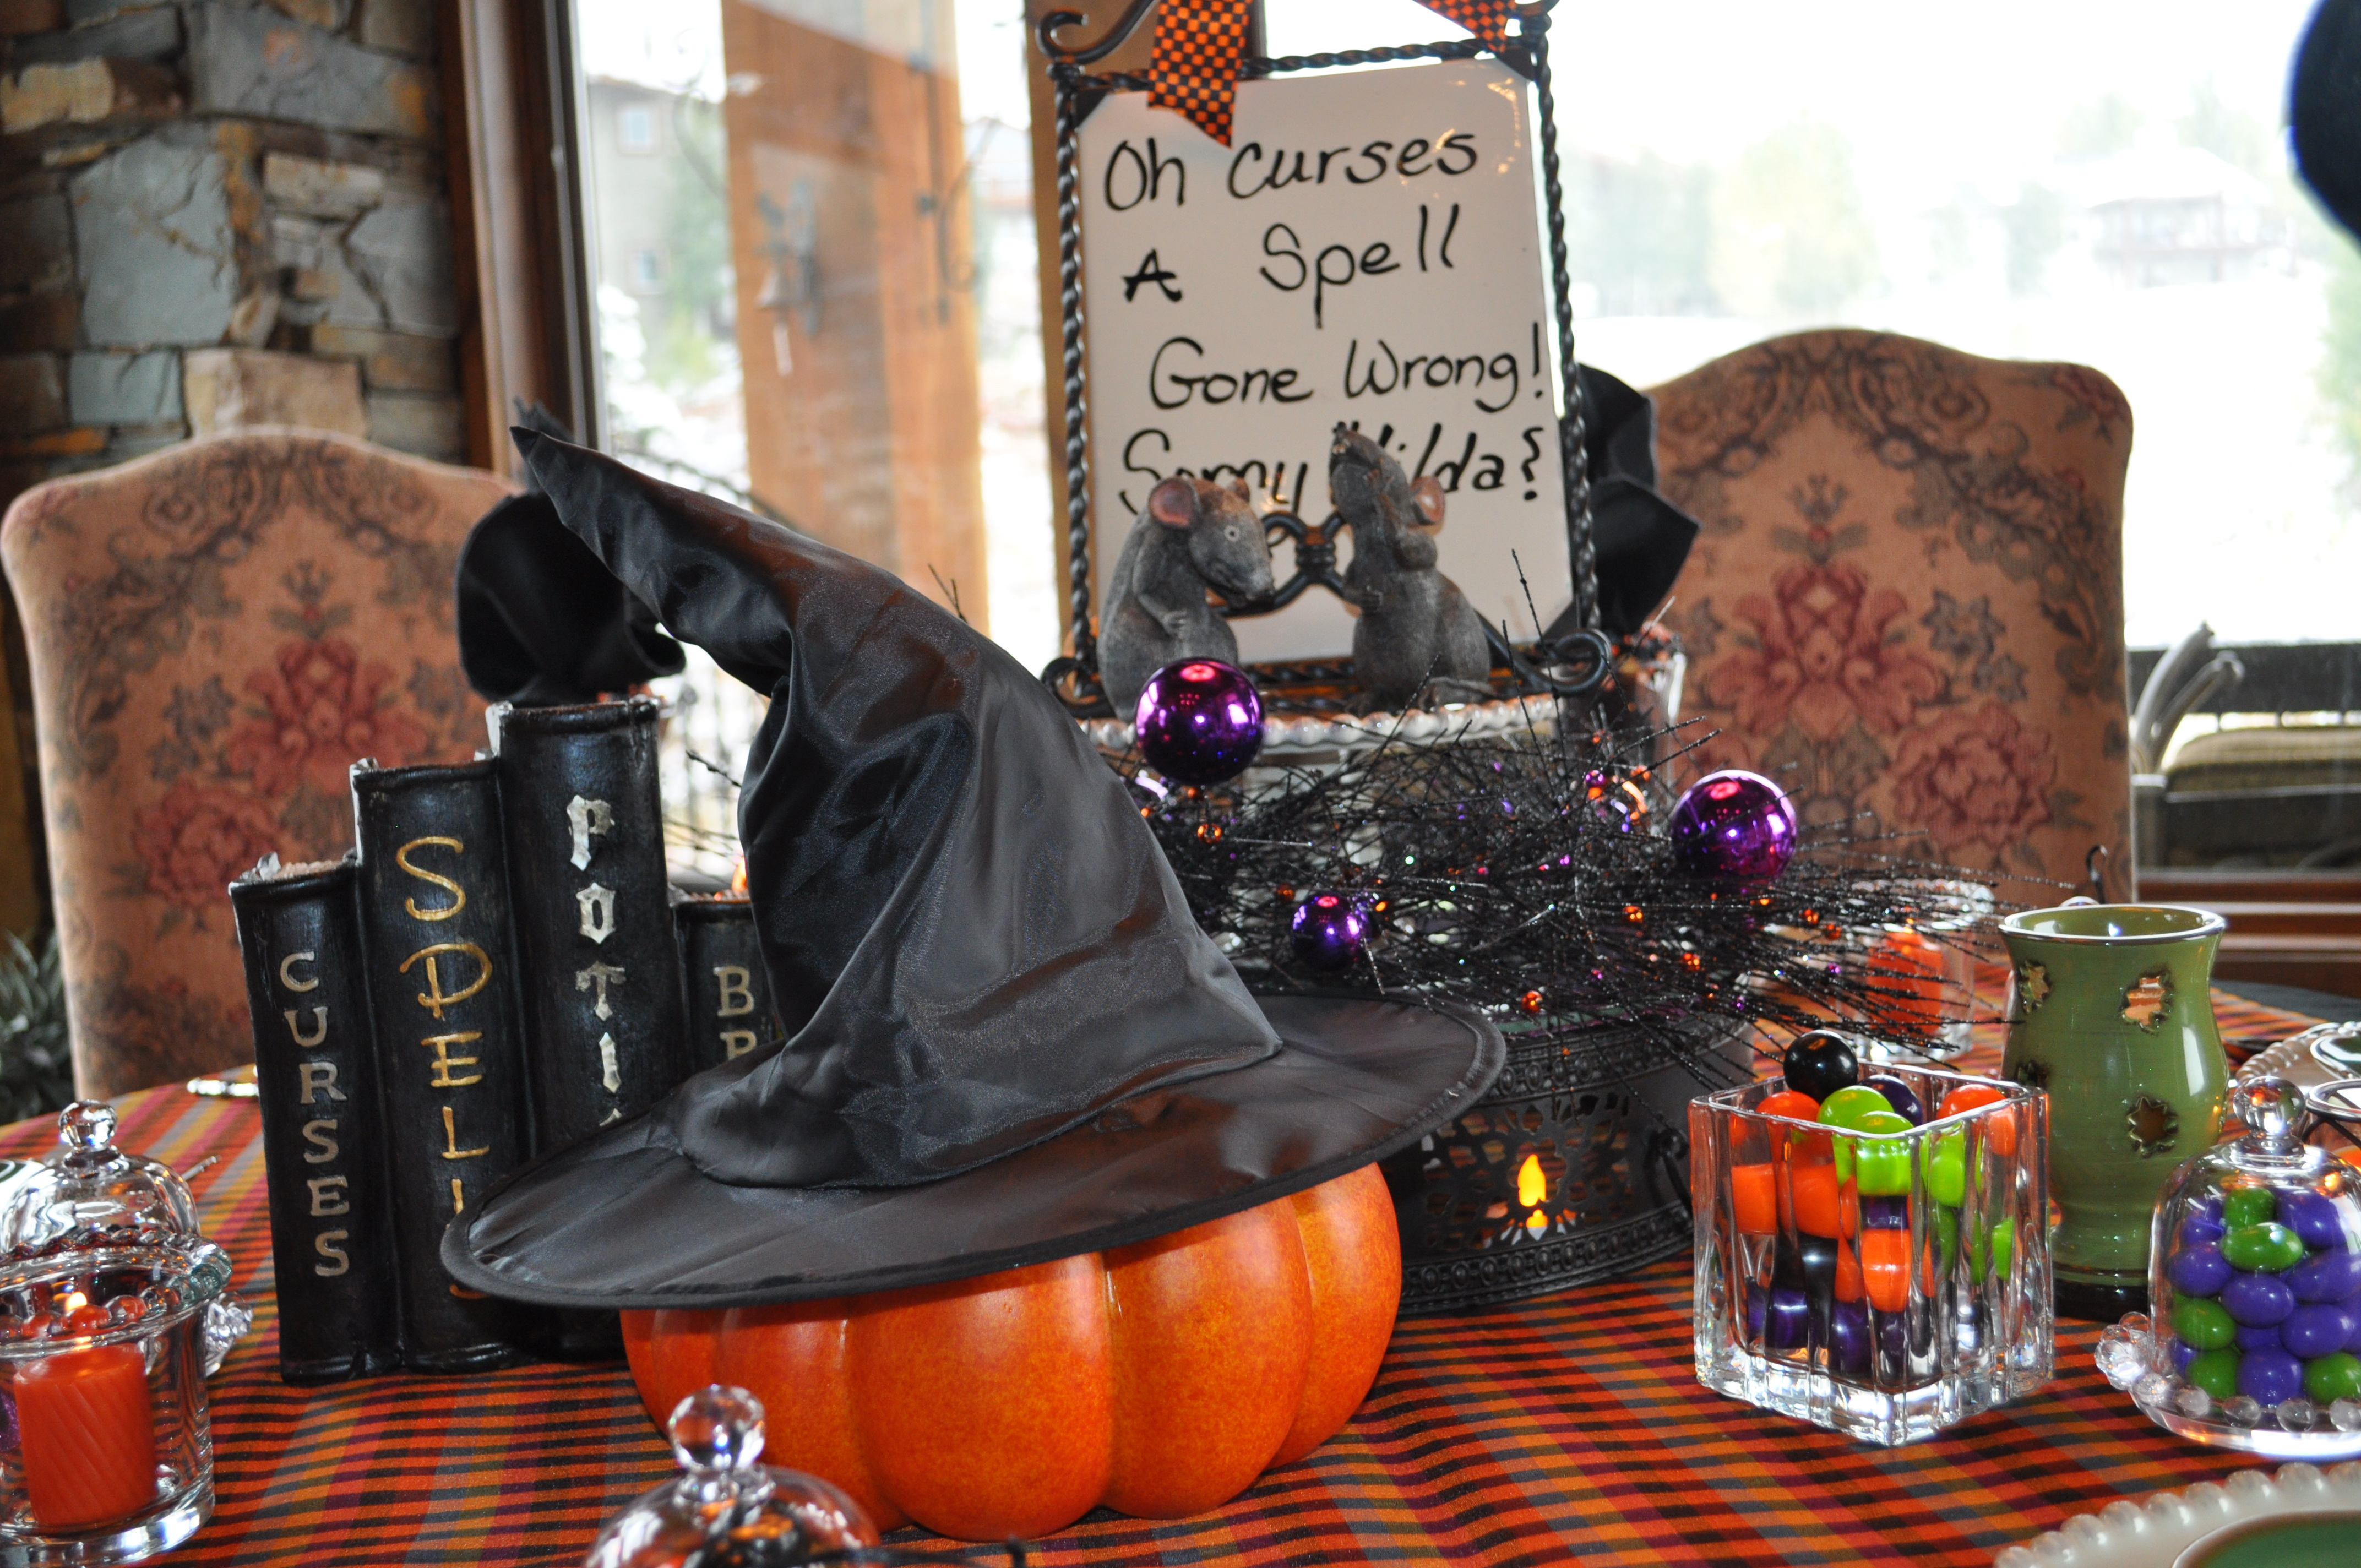 Halloween tablescapes - When I Think Of Hocus Pocus The Movie It S One Of My Halloween Favorites Purples Greens And Oranges Pop Into My Head All Kind Of Whimsy